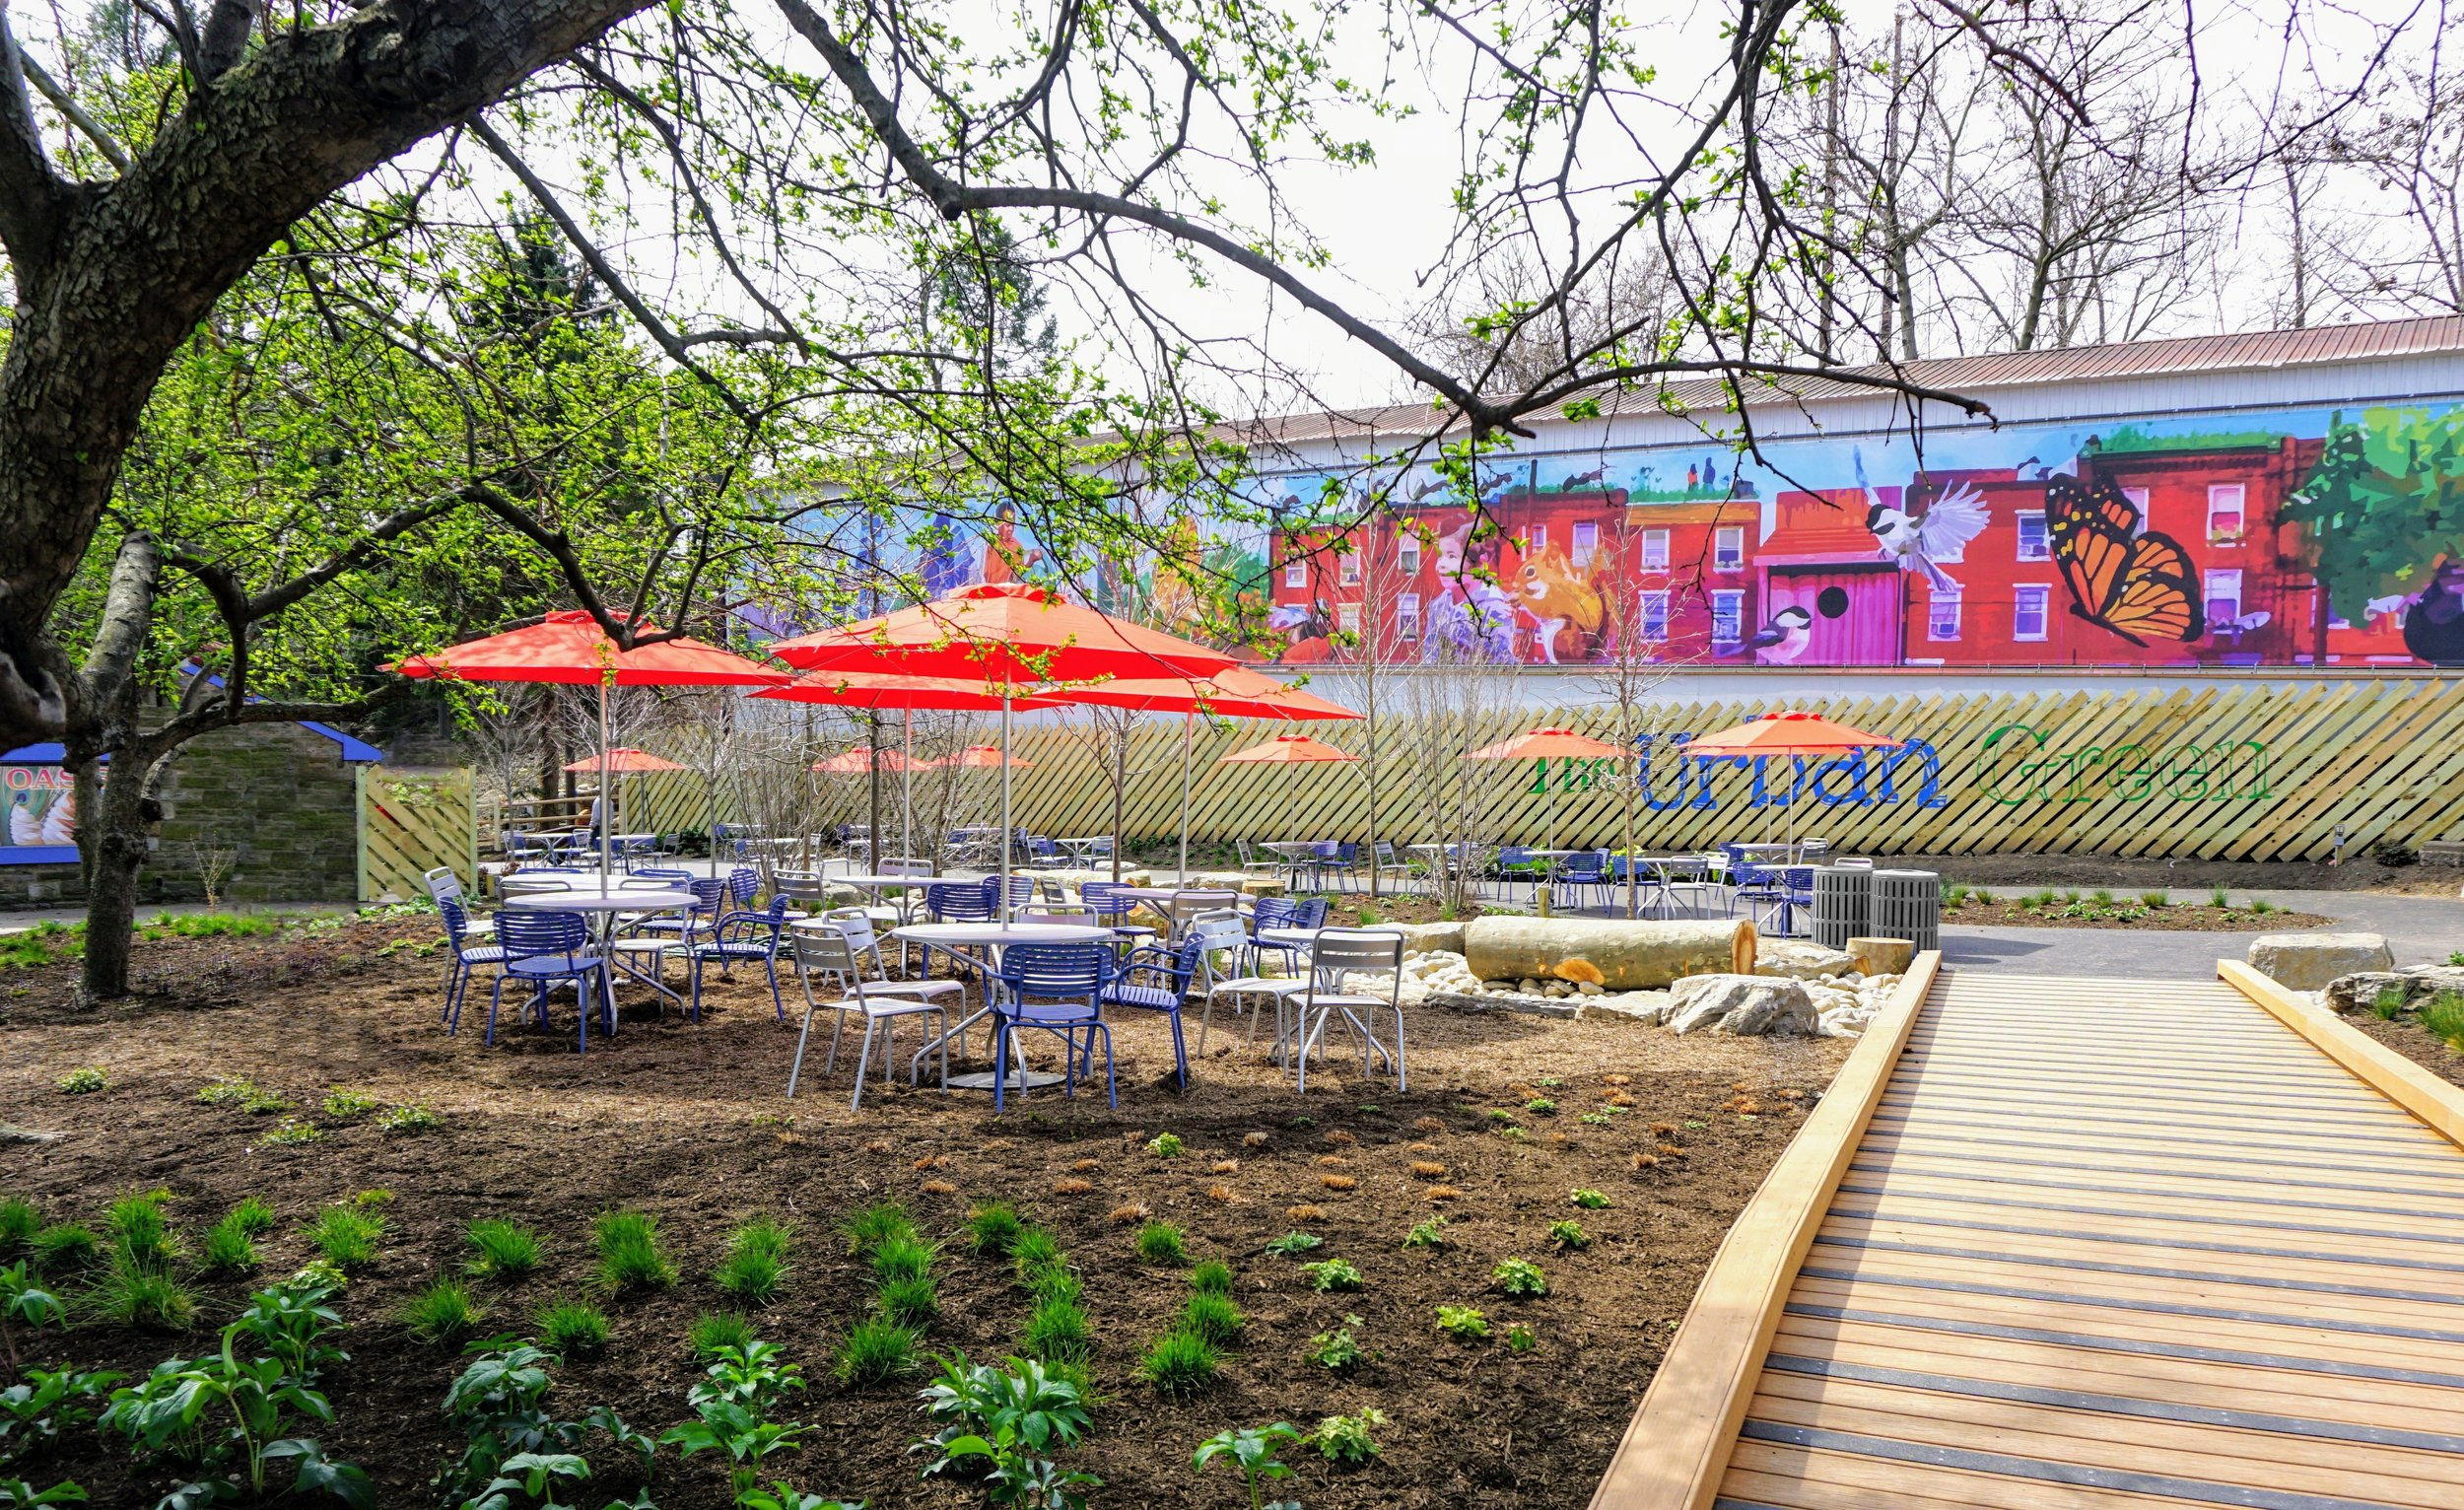 The Urban Green, Philadelphia Zoo's Newest Outdoor Dining Destination